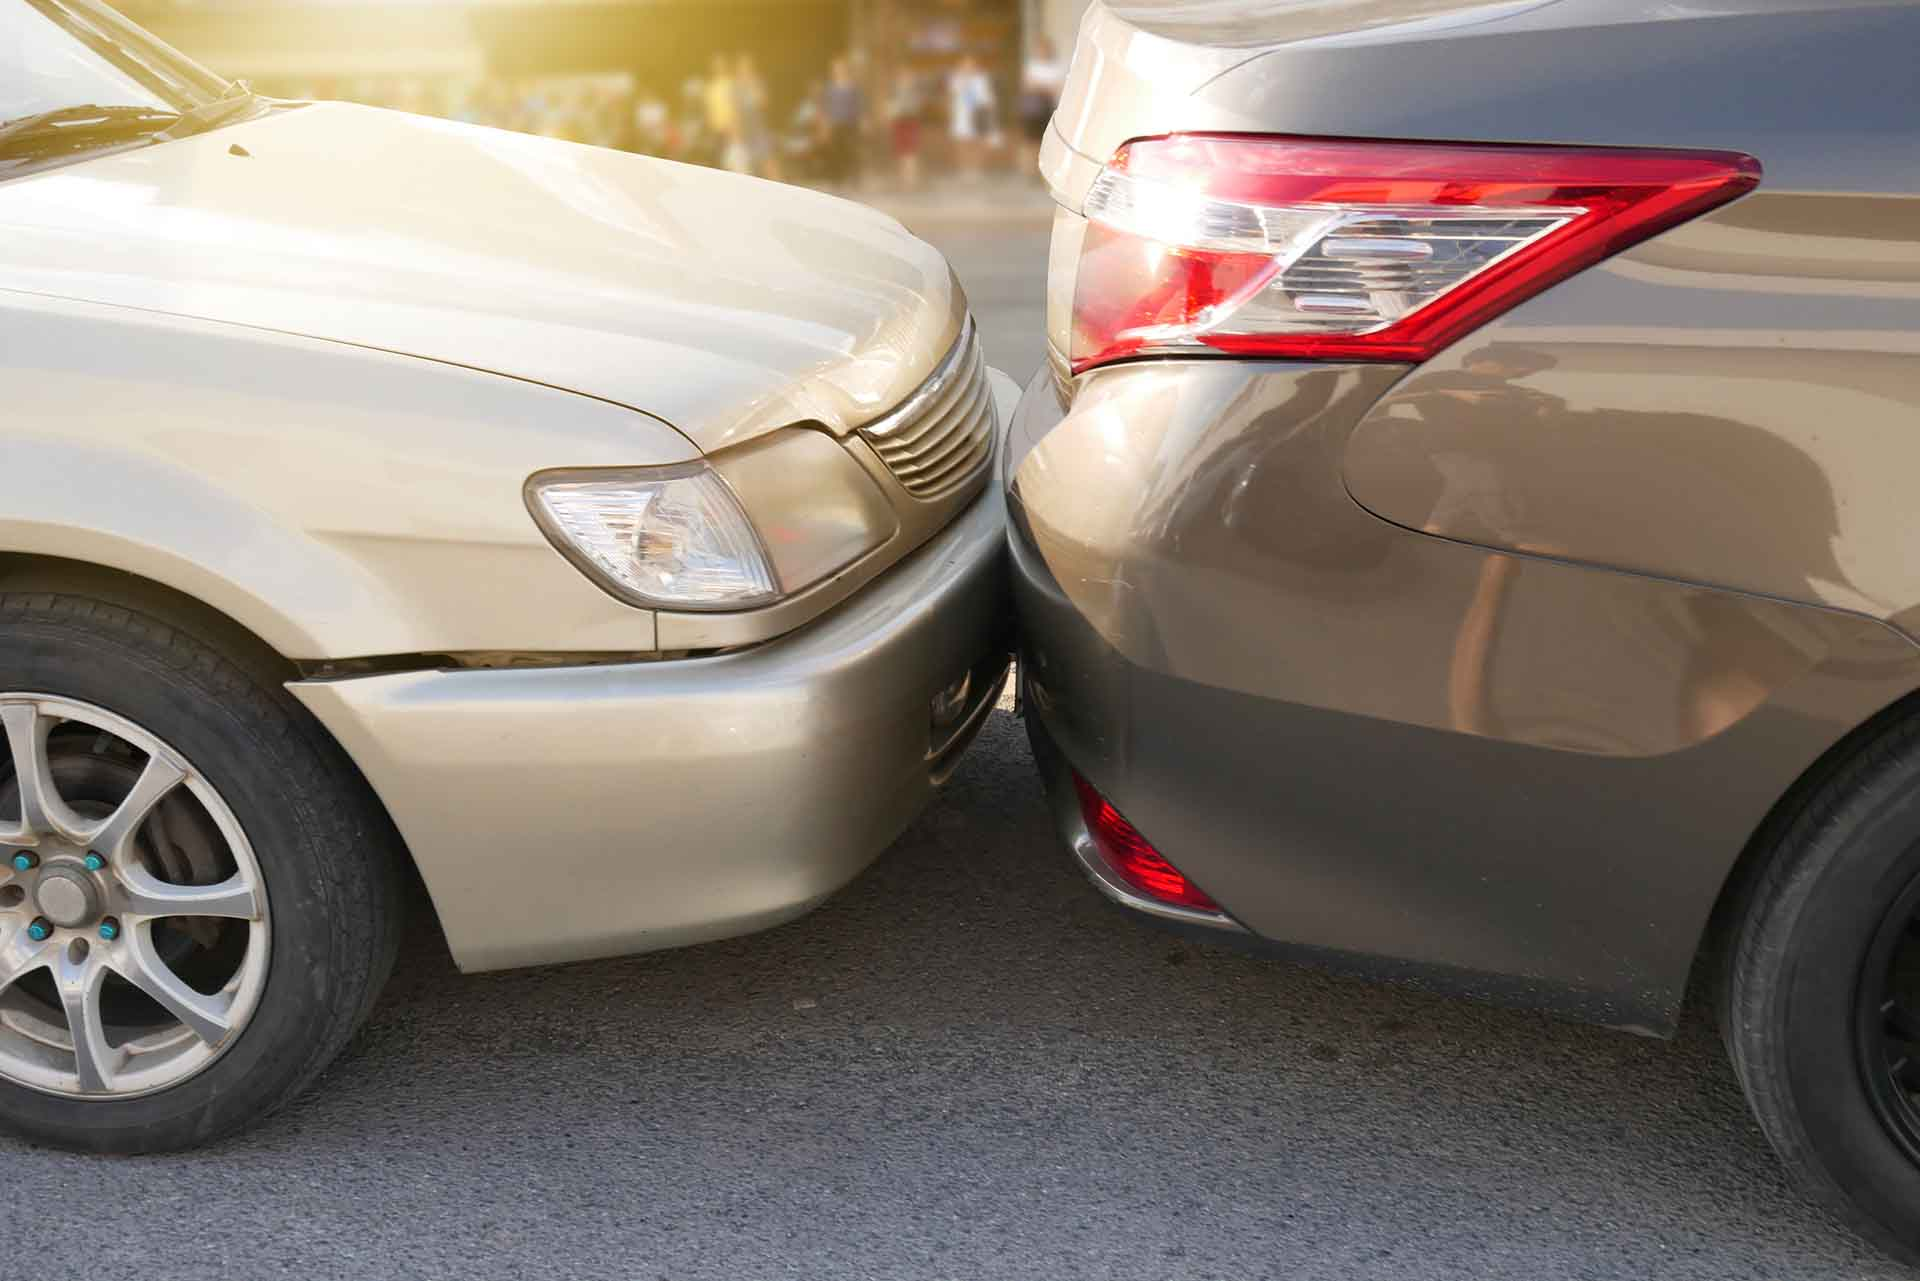 Southern Illinois Car Accident Lawyer